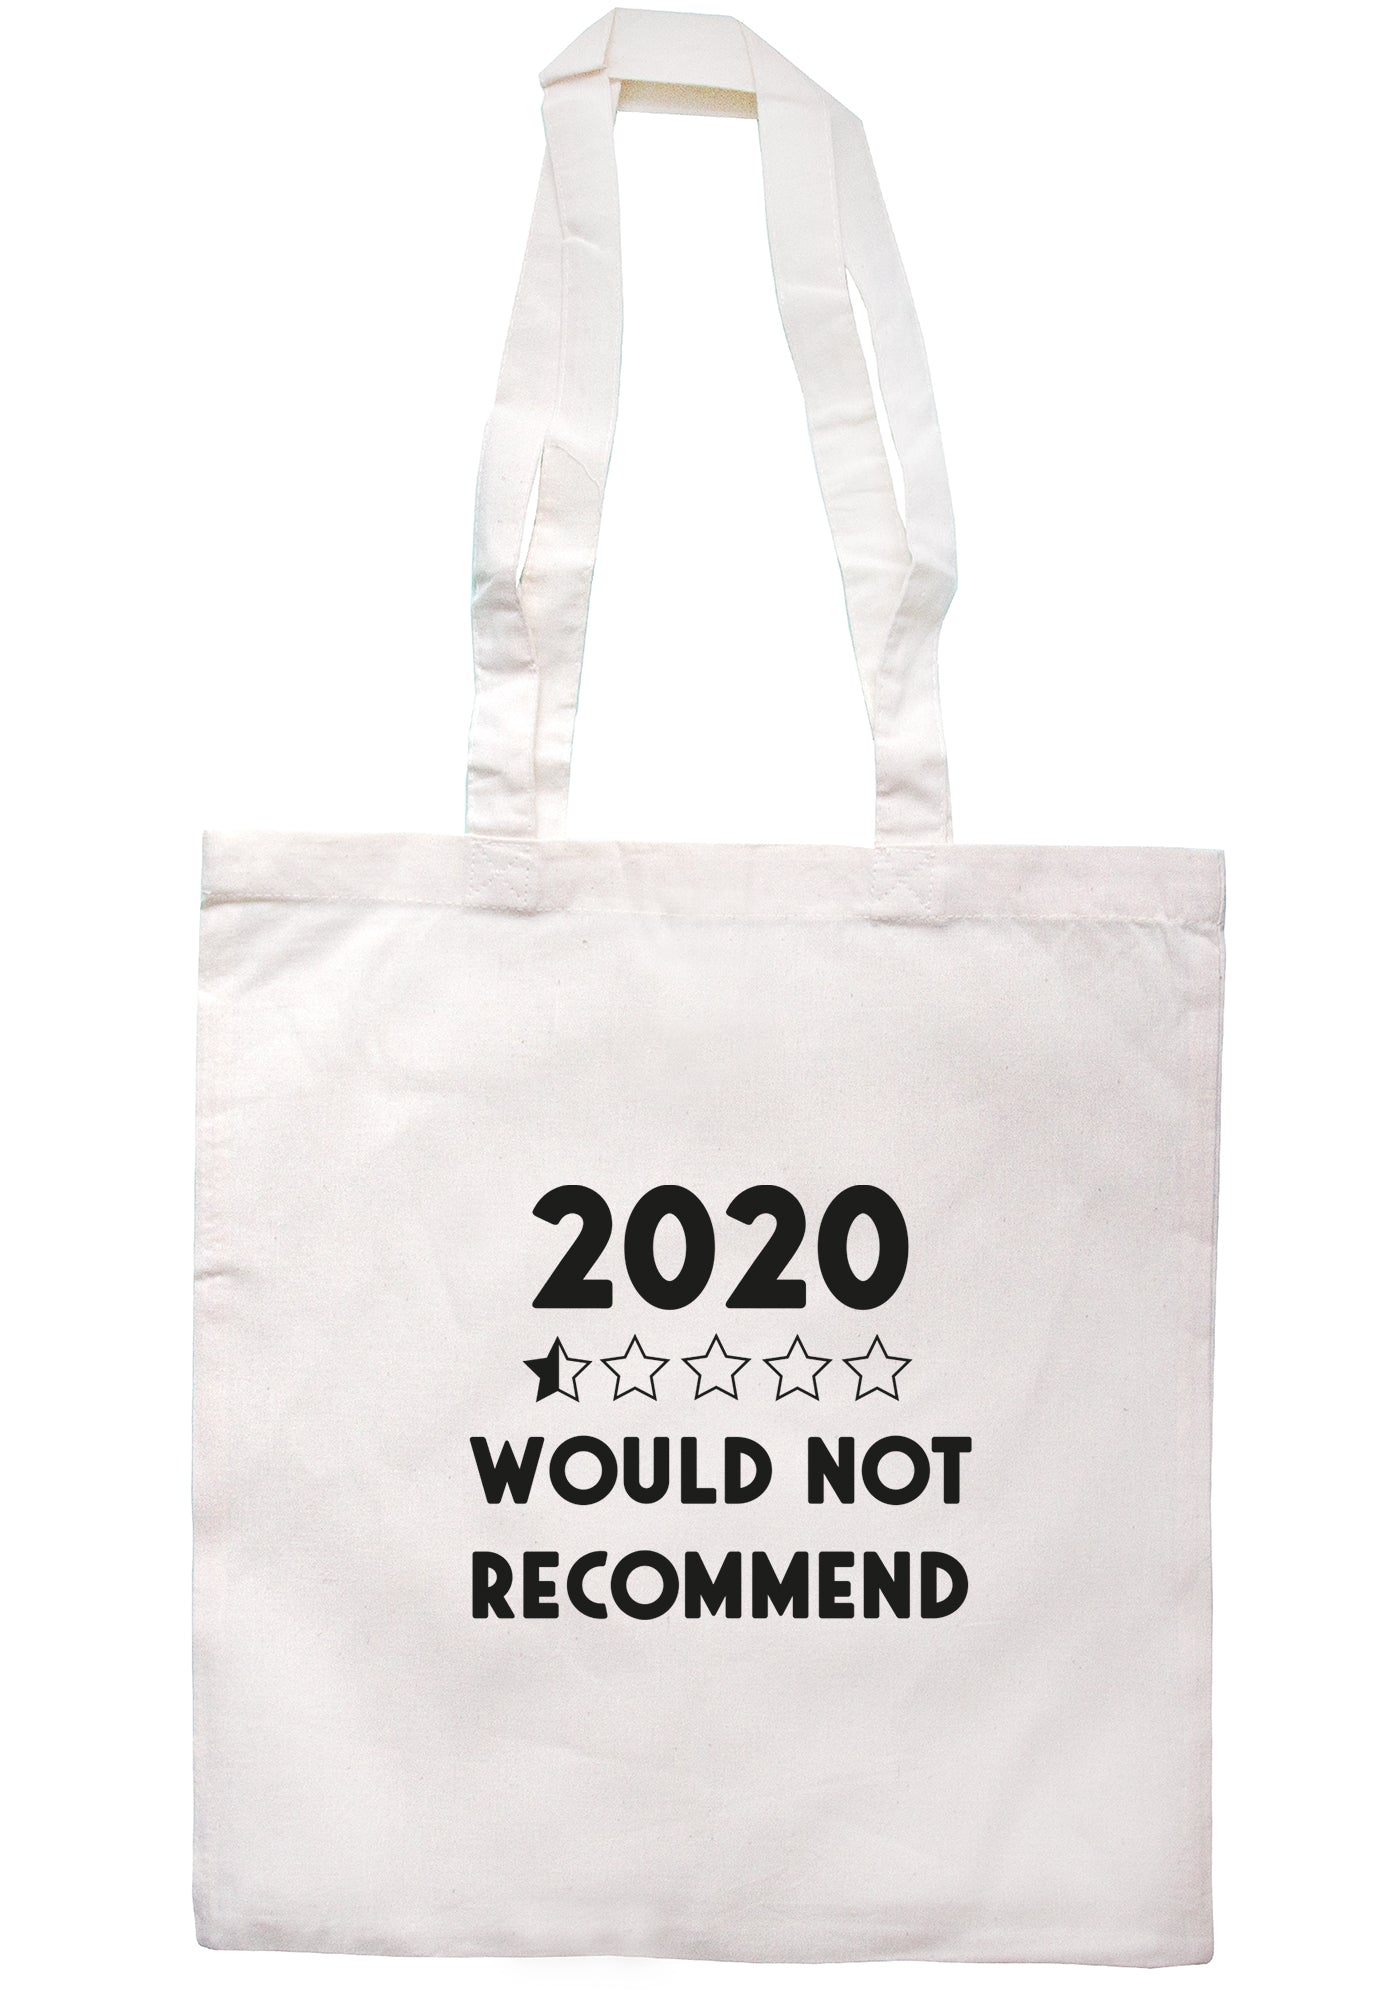 2020 Would Not Recommend Tote Bag S1124 - Illustrated Identity Ltd.